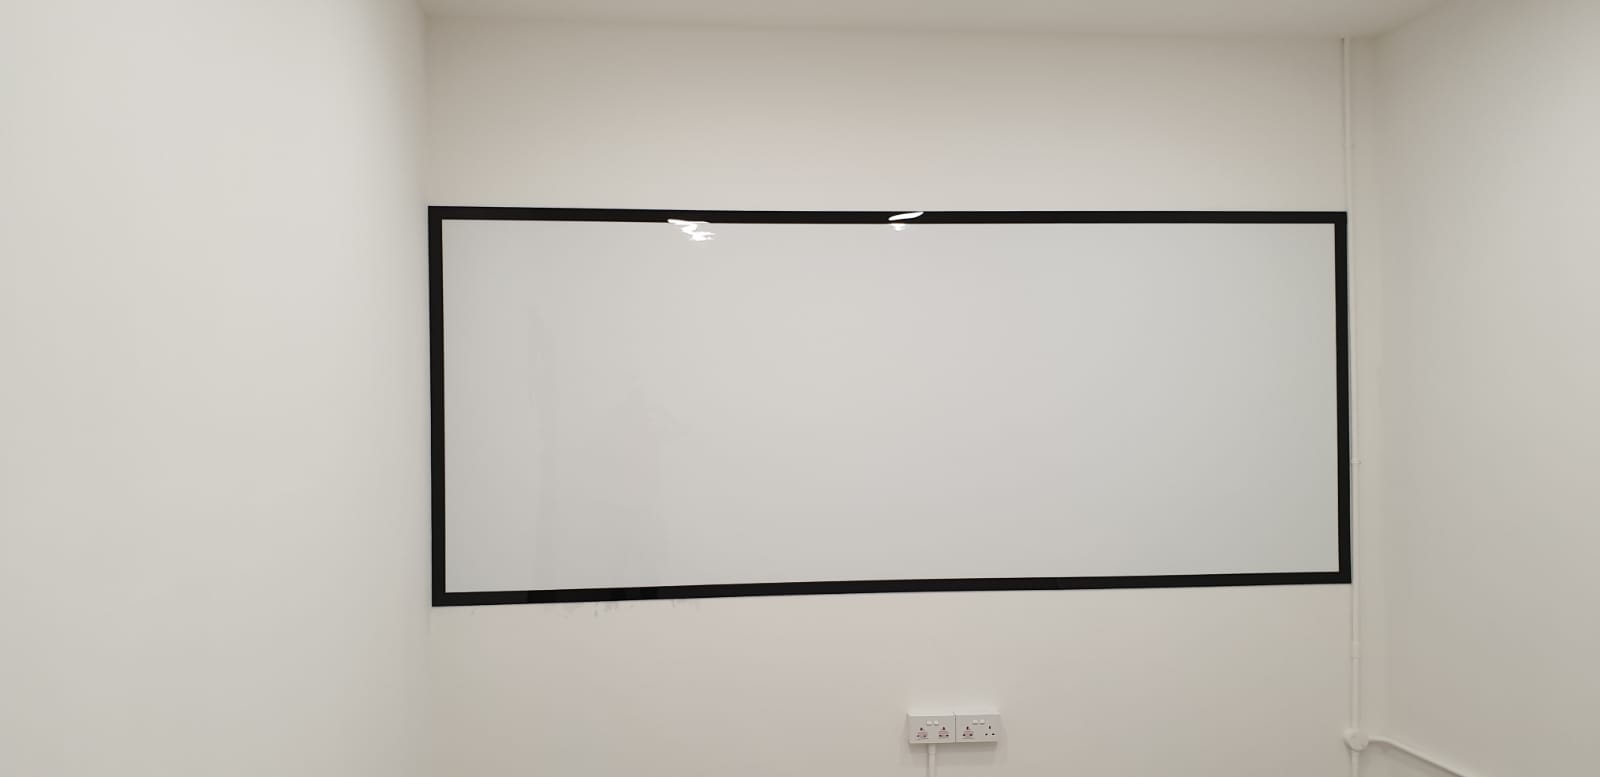 Whiteboard with frame